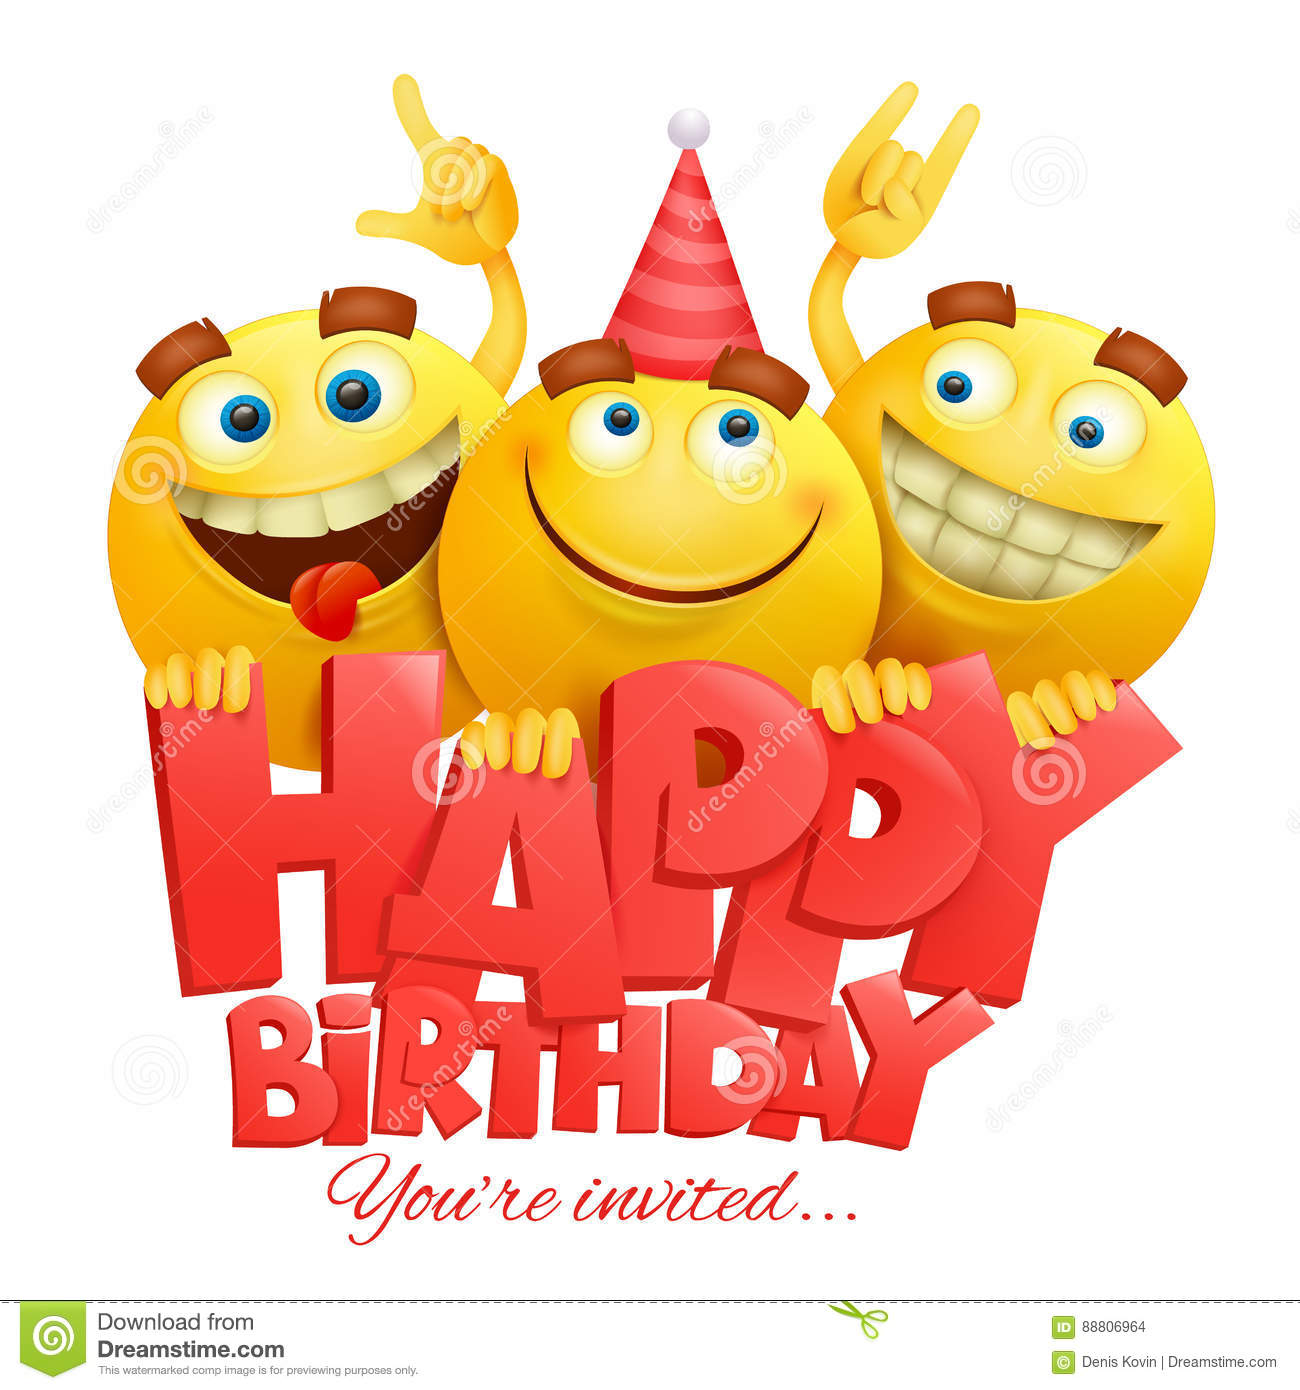 Smiley Yellow Faces Emoji Characters Happy Birthday Card Stock